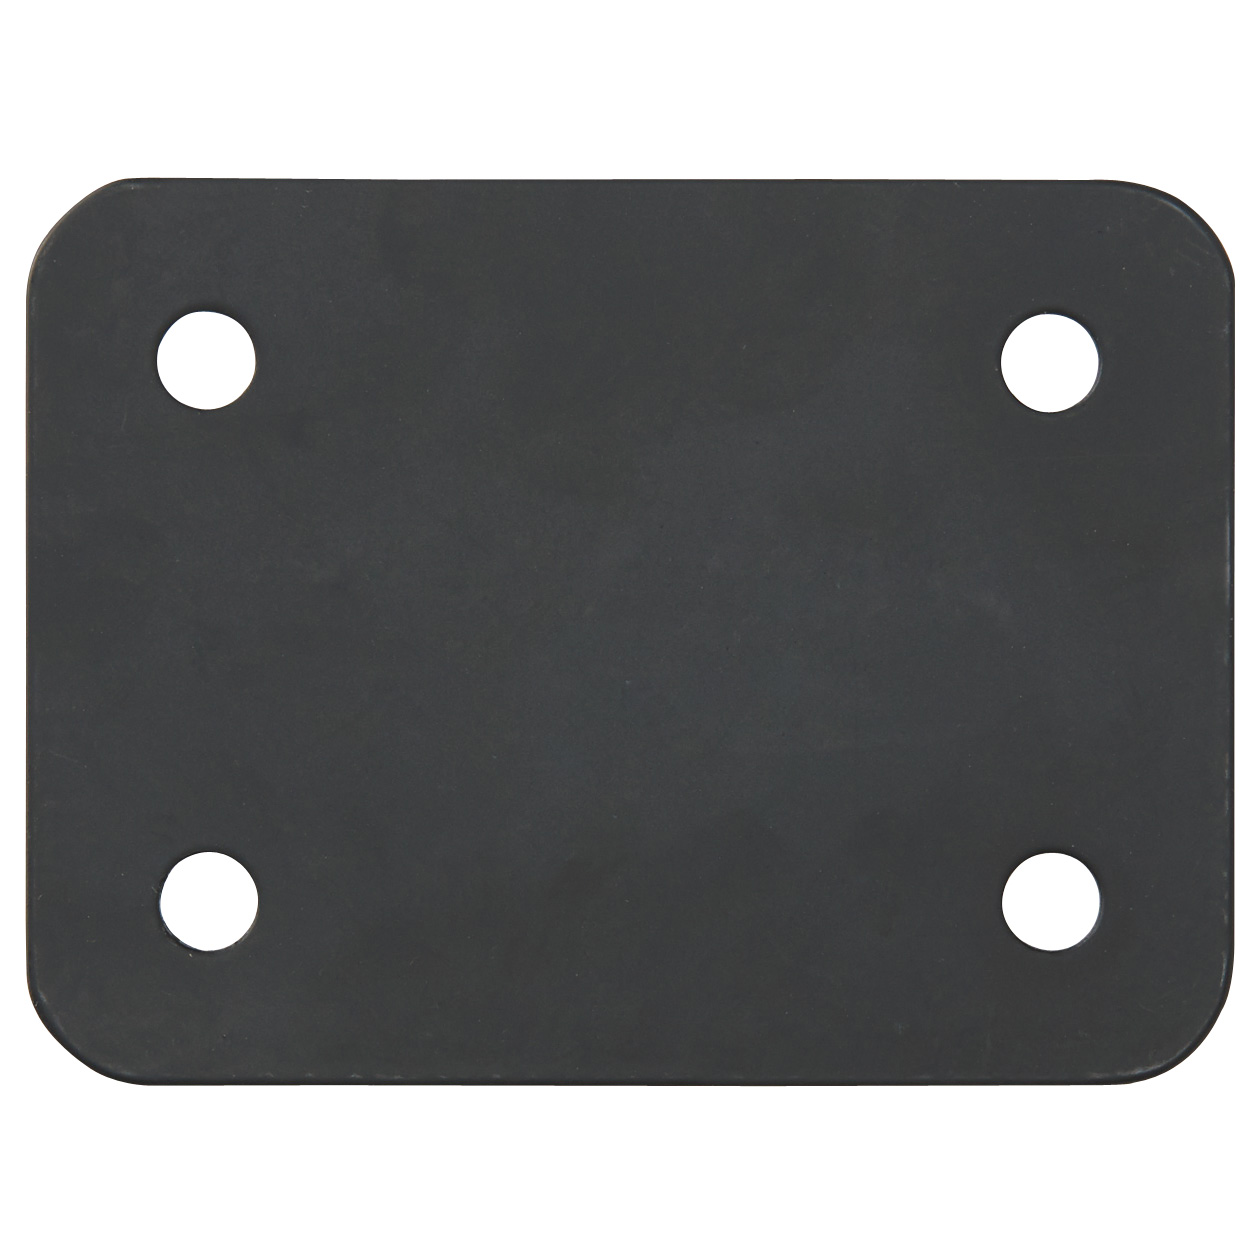 CONNECTING PLATE FOR LD SOFA CHAIR